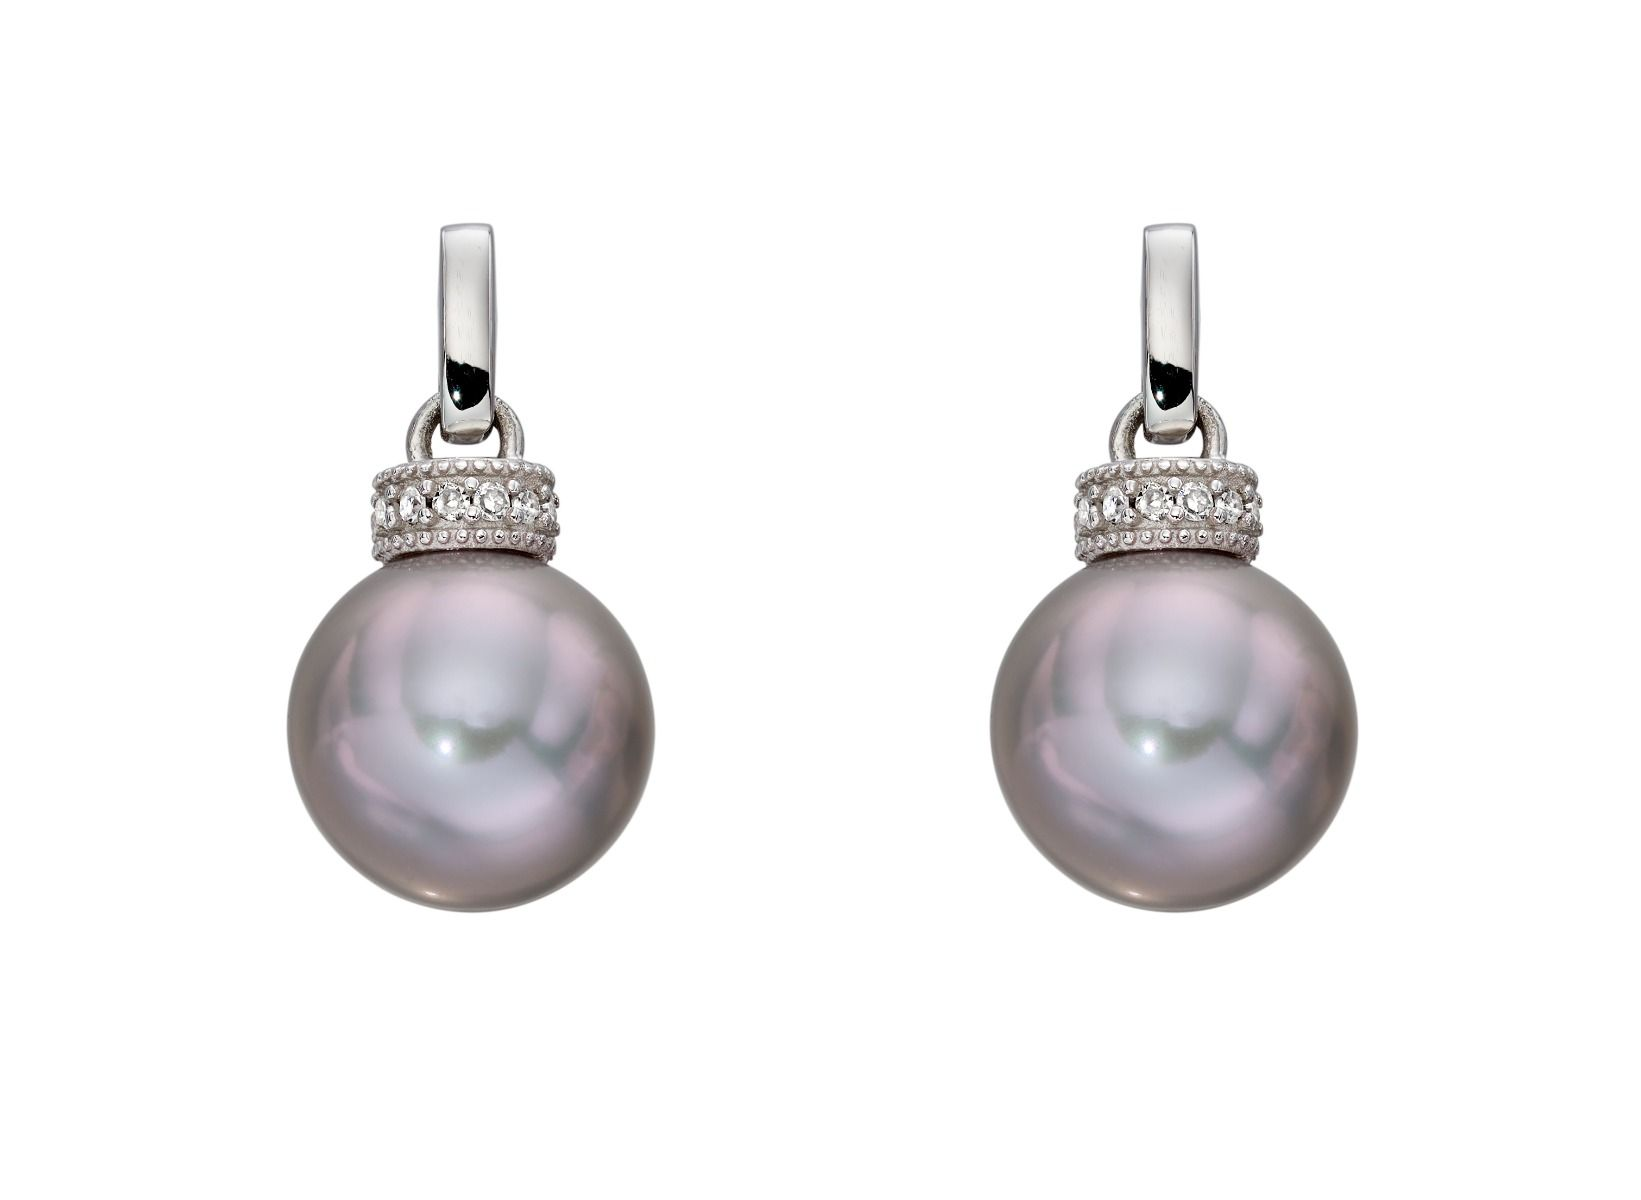 69500 - Pearl drop earrings in 9ct white gold